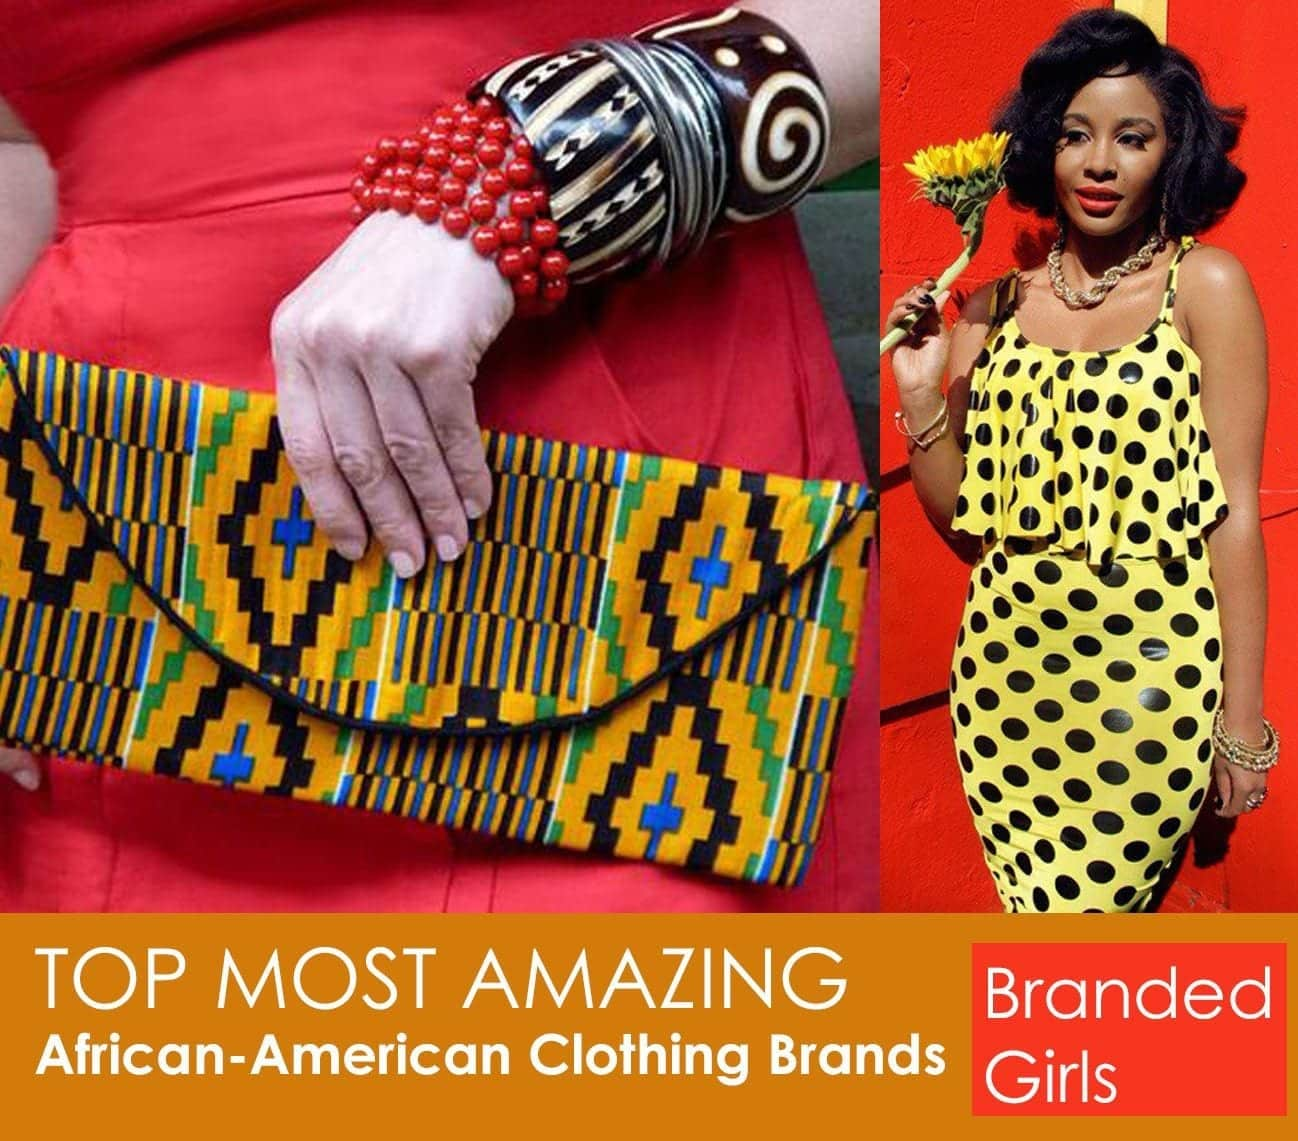 polyvore-sample-9 African American Clothing Brands-Top 15 Black Clothing Designers